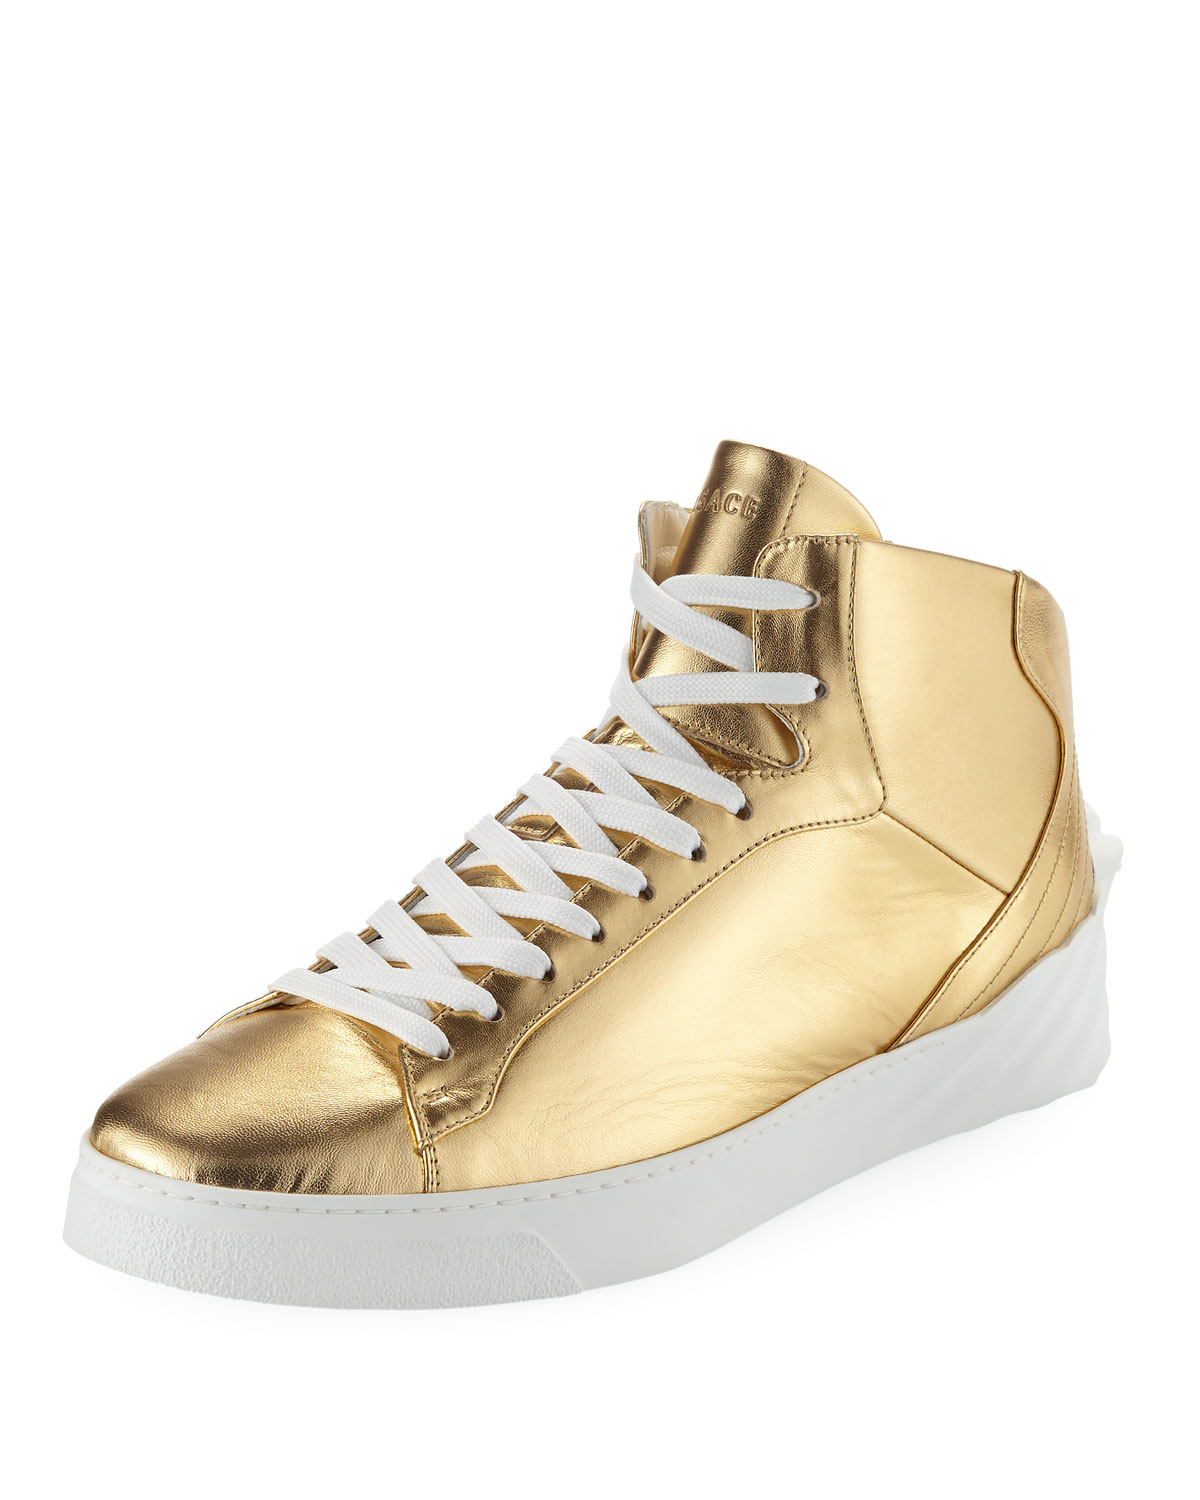 d4f18123fb Men's Metallic Leather High-Top Sneakers with Medusa